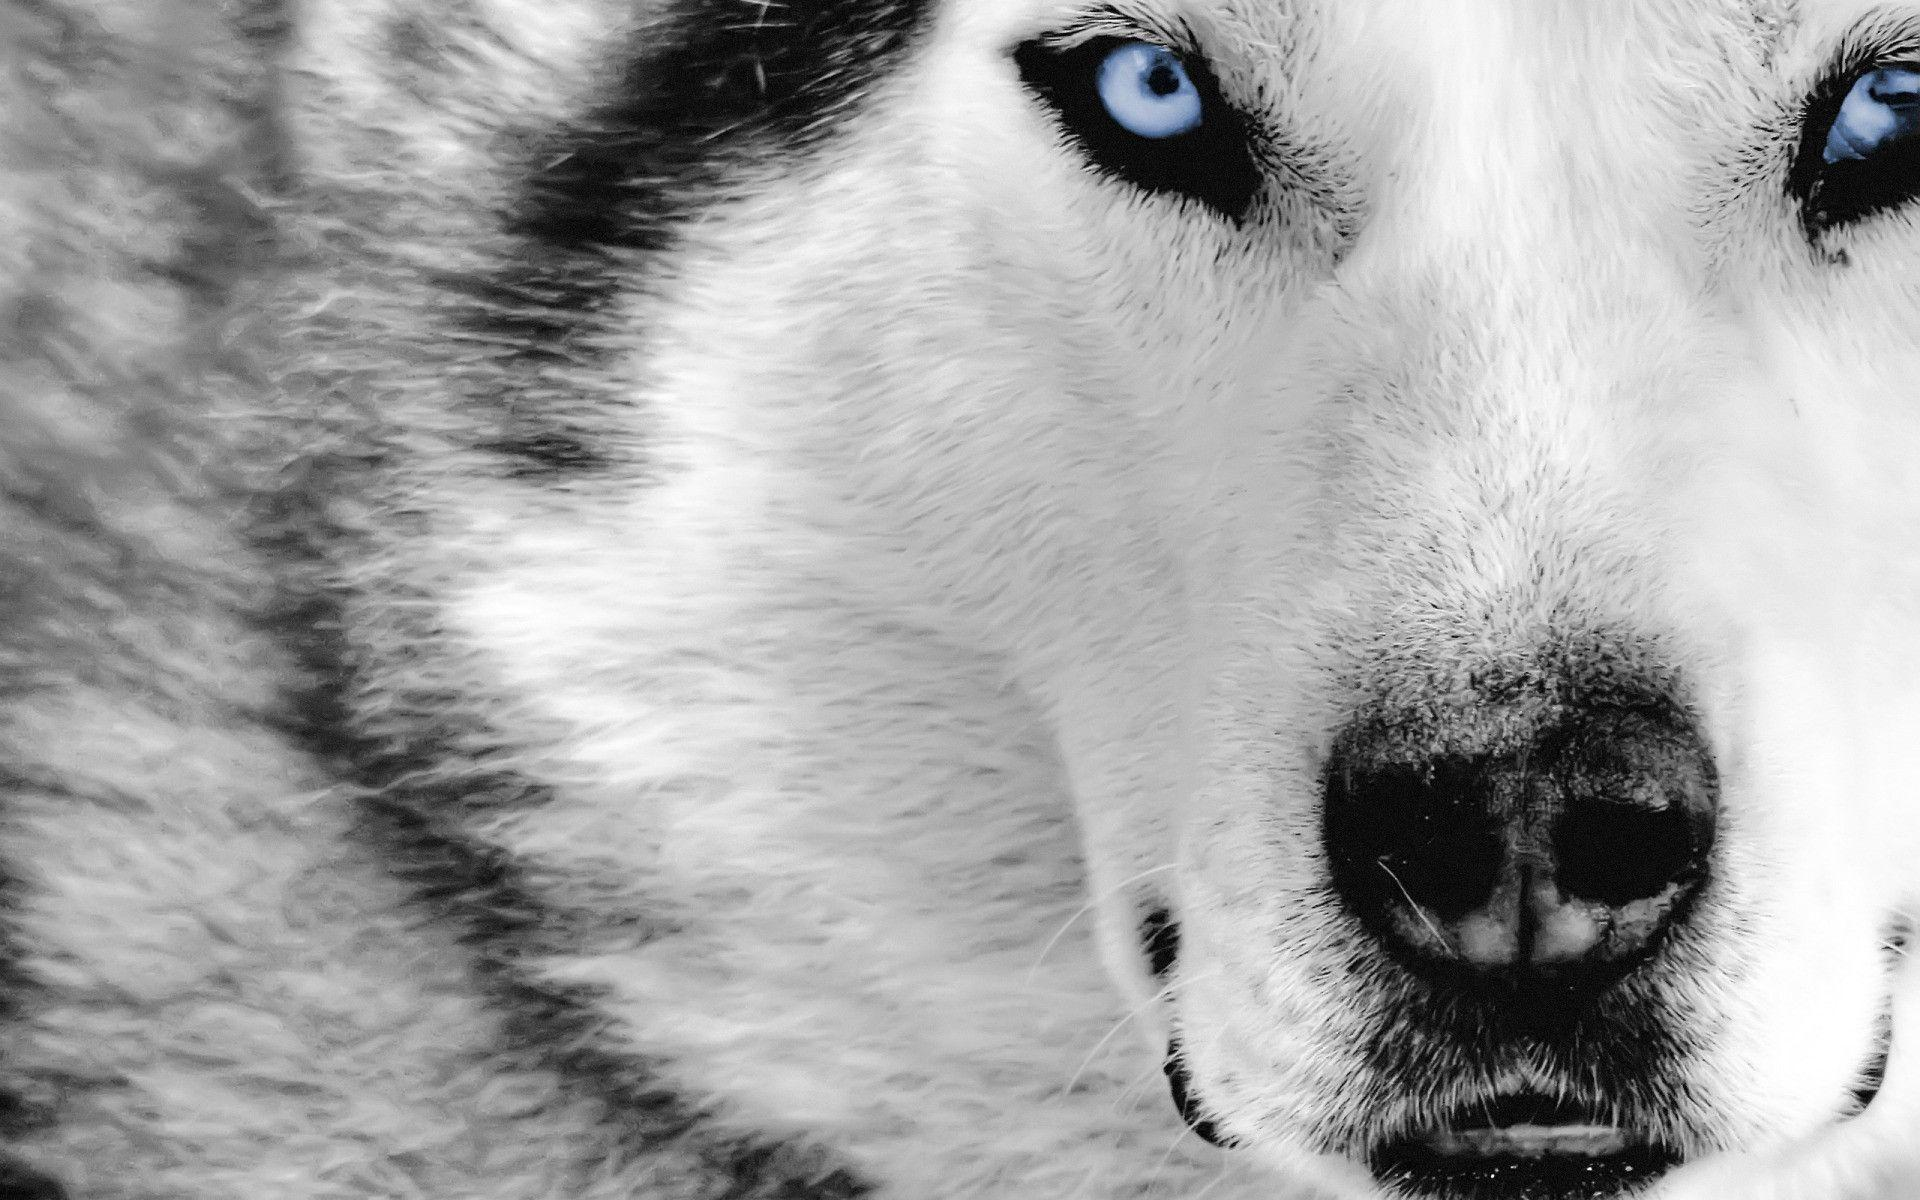 wolf wallpaper free download  Free HD Wolf Wallpapers - Wallpaper Cave